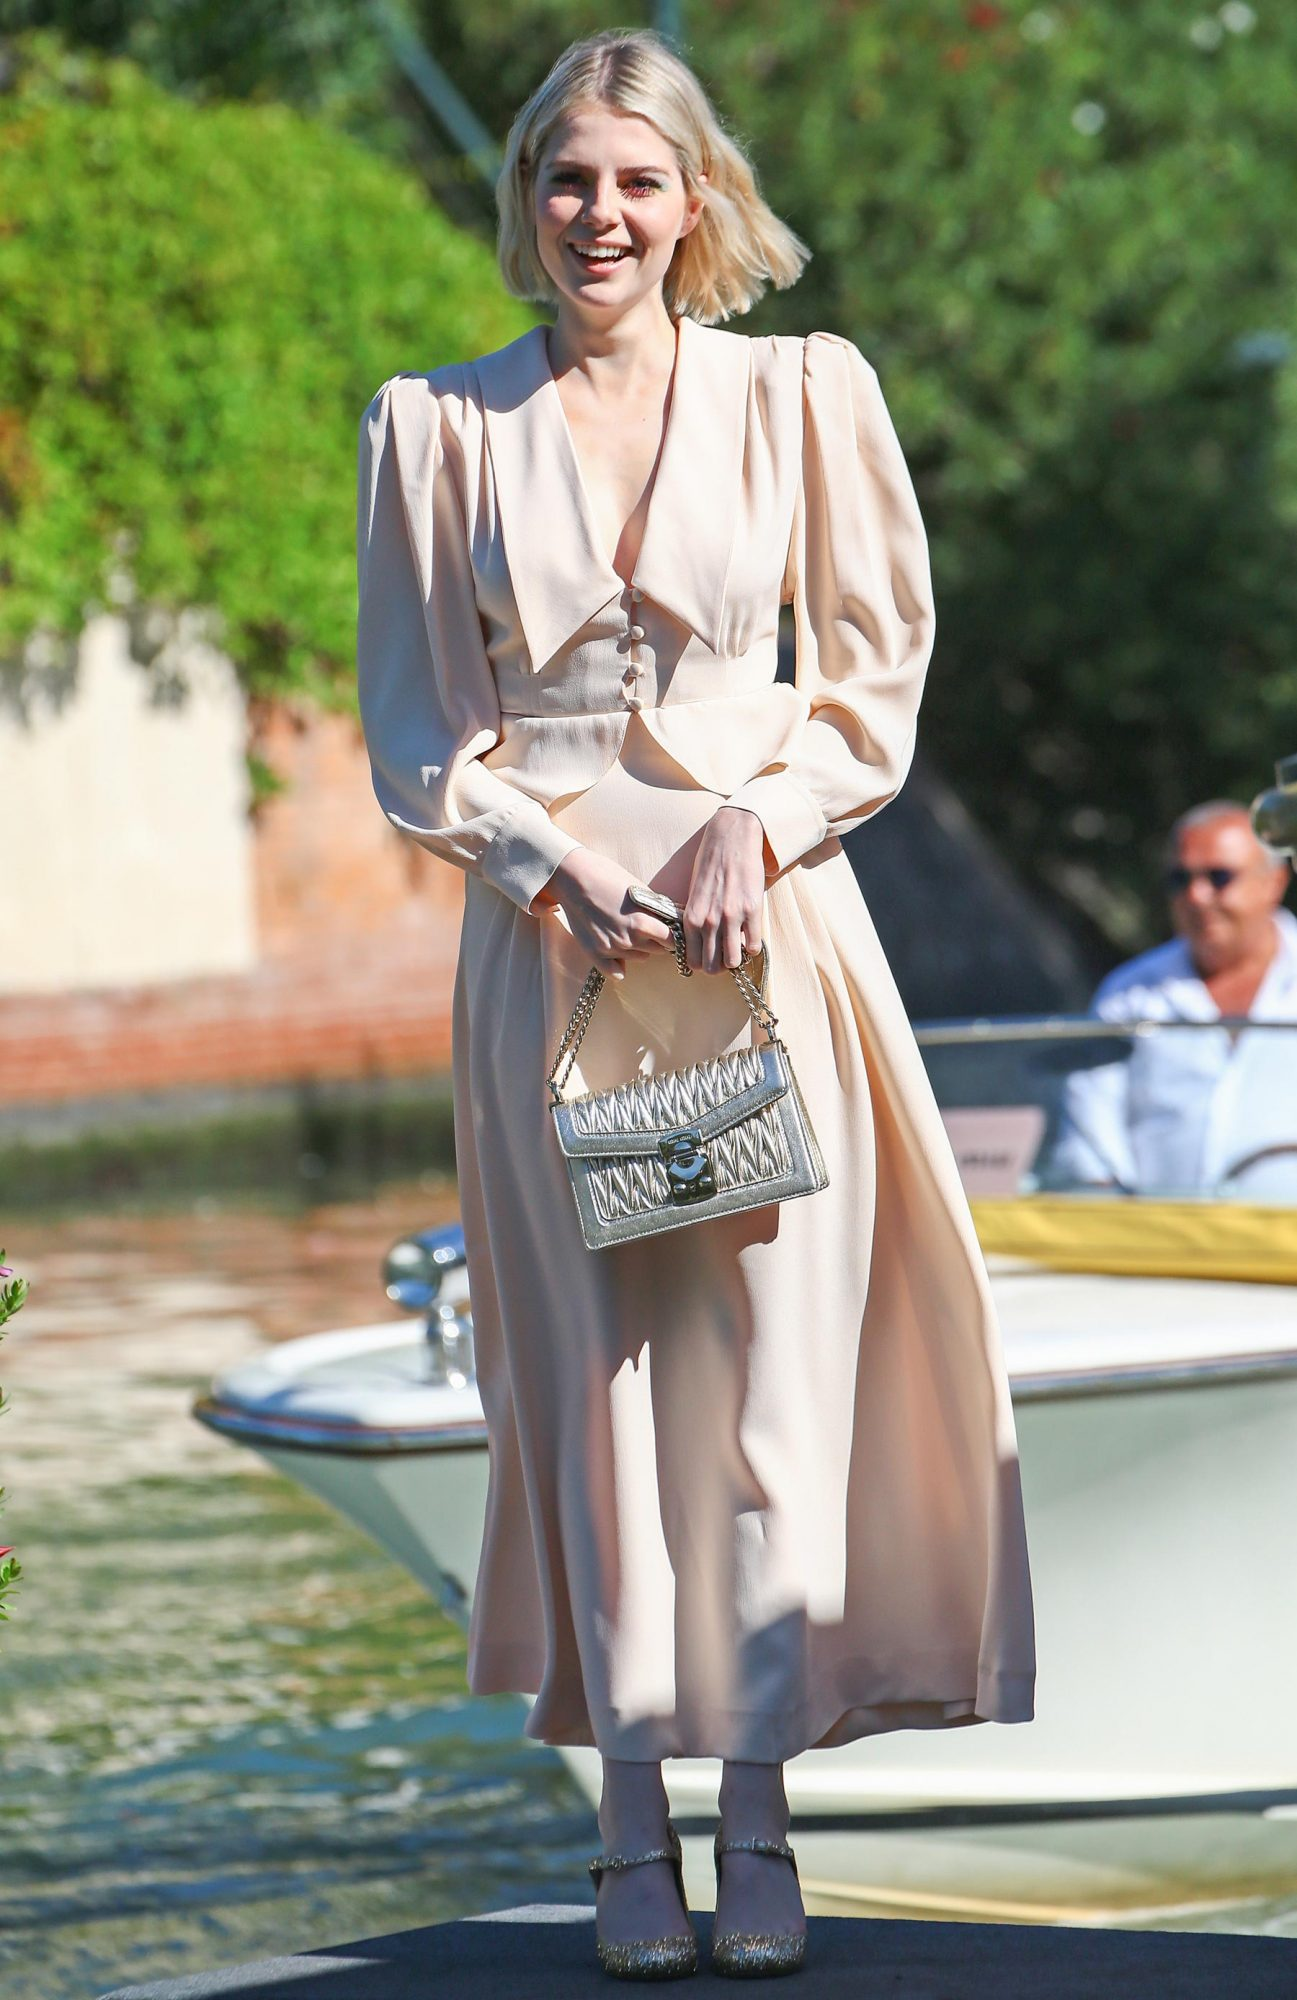 Celebrity Sightings During The 76th Venice Film Festival - September 3, 2019